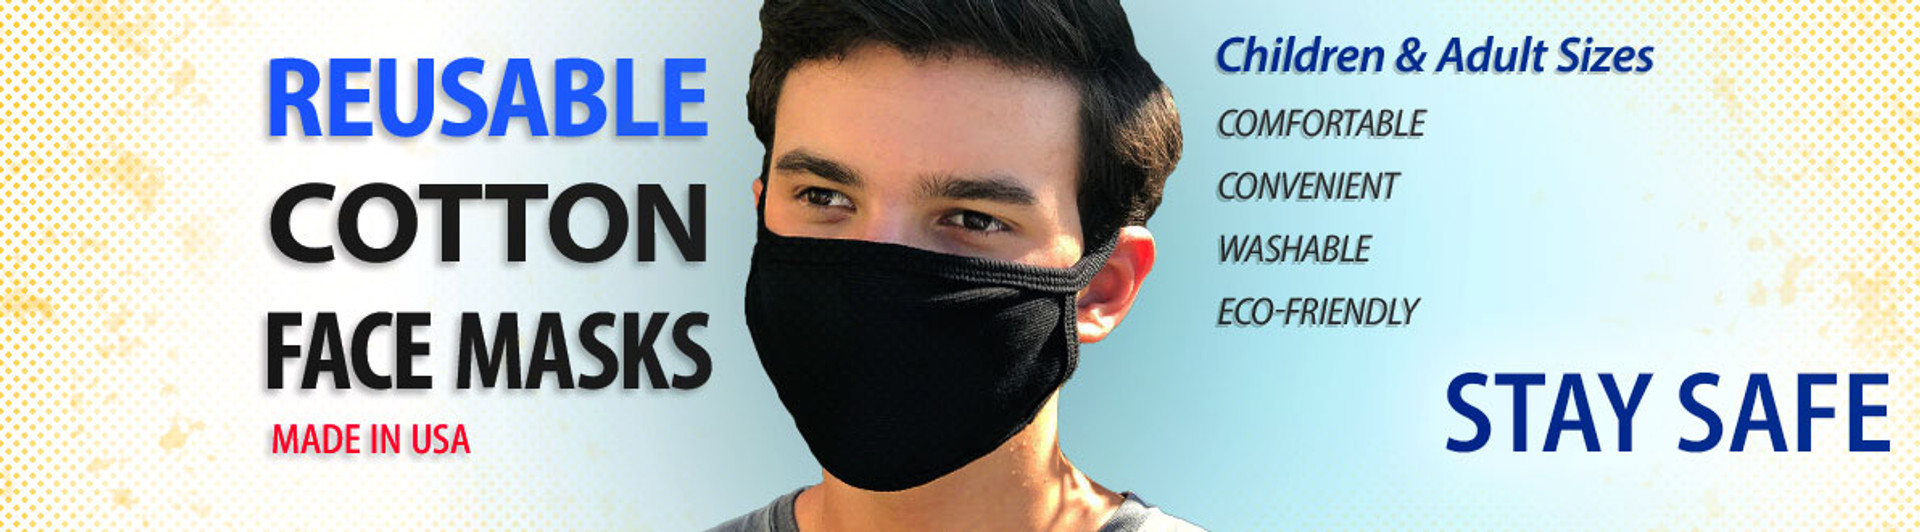 Reusable Cotton Face Masks Made in USA